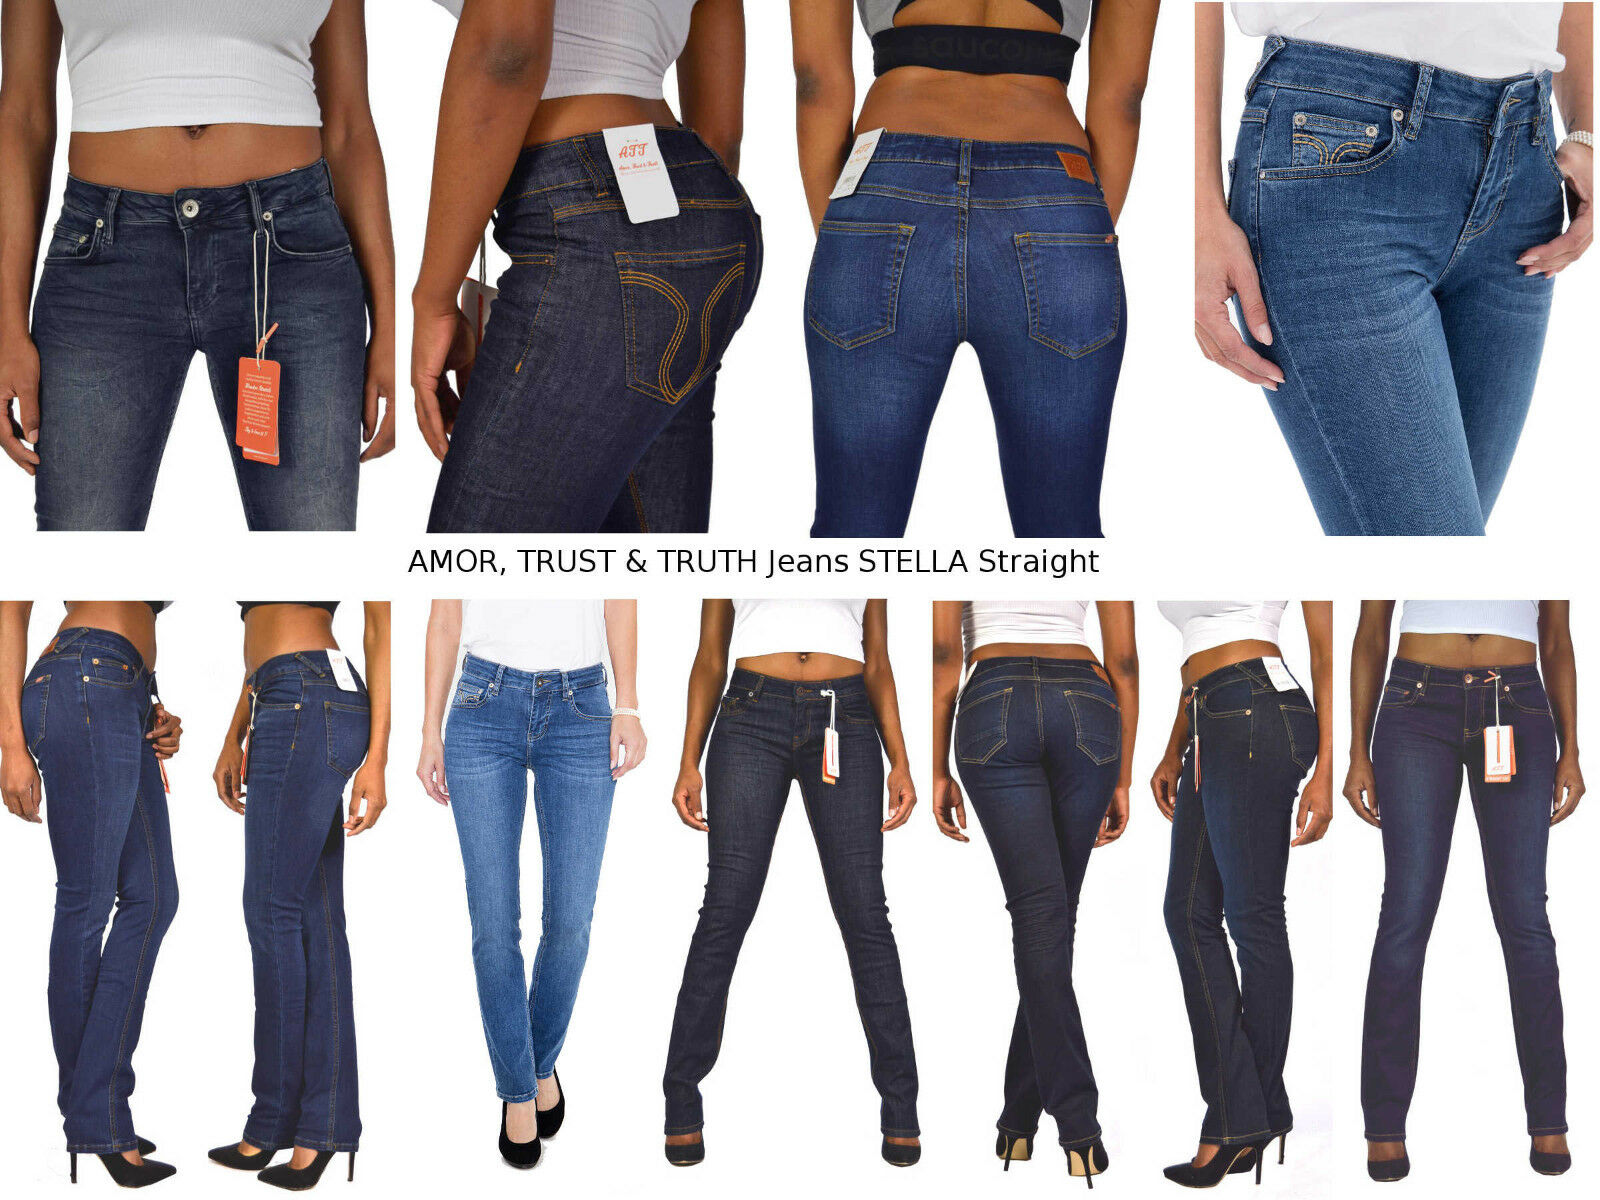 ATT Amor Trust & Truth Jeans STELLA Straight 11051 Wonderstretch Regular Waist